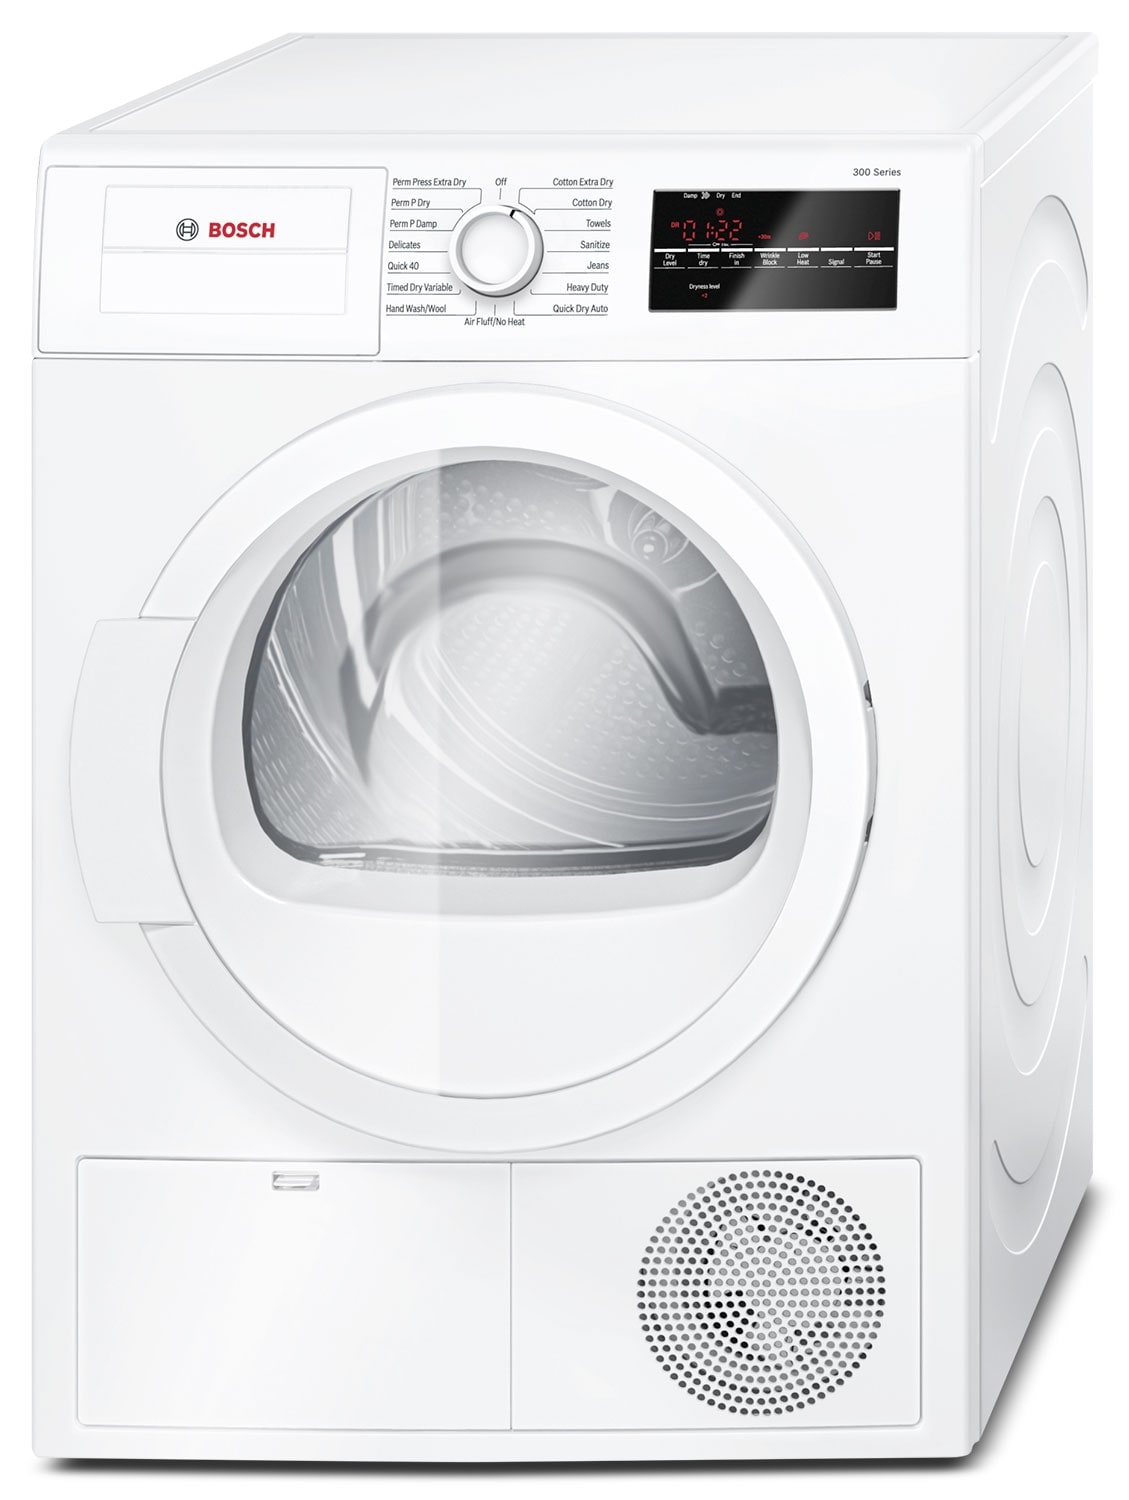 Bosch White Electric Dryer (4 Cu. Ft.) - WTG86400UC